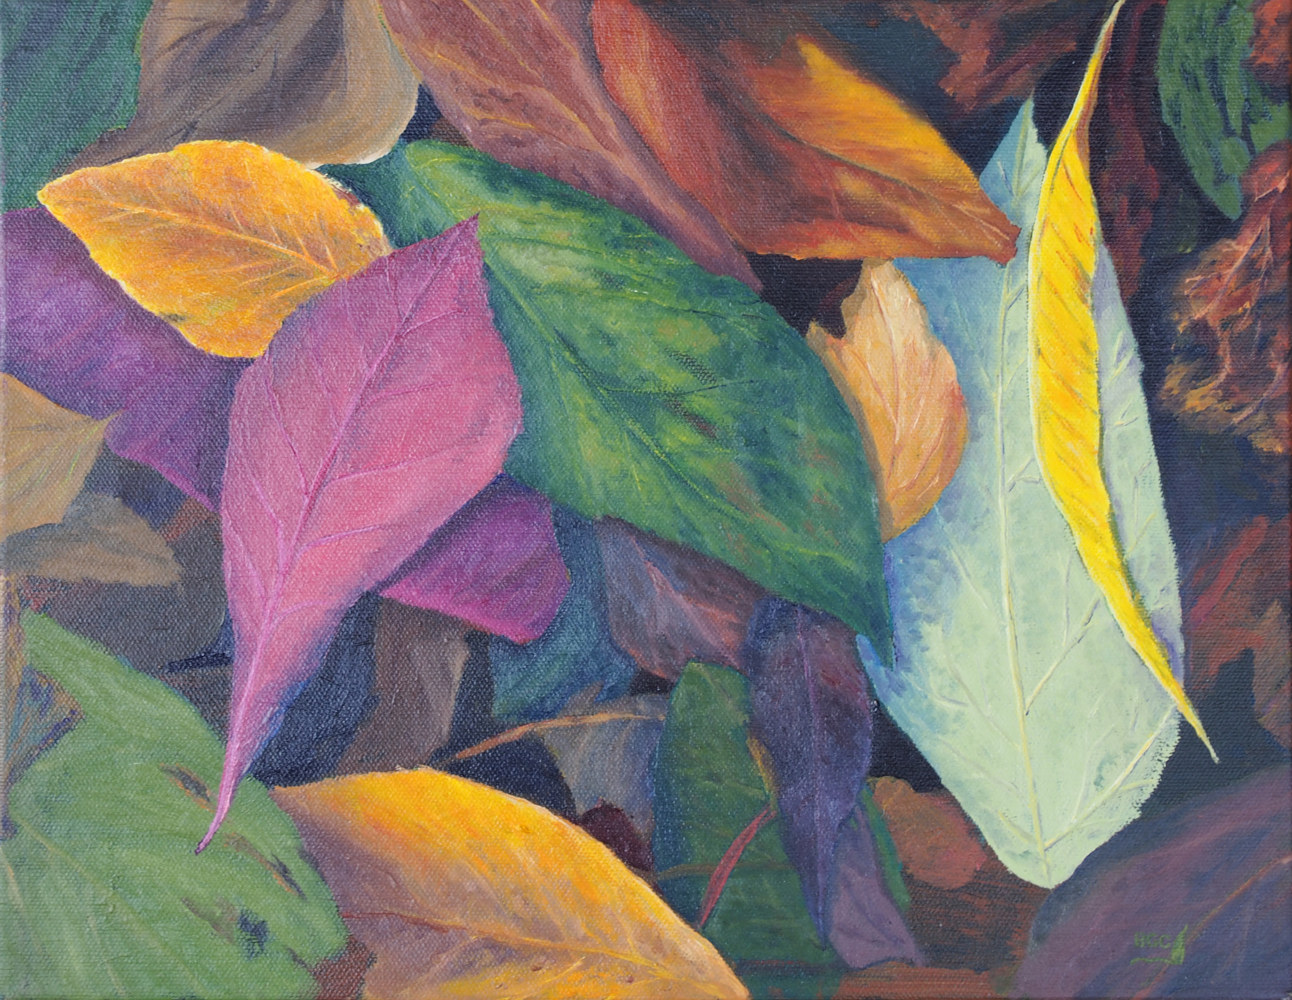 Oil painting One Yellow Leaf by Brent Ciccone